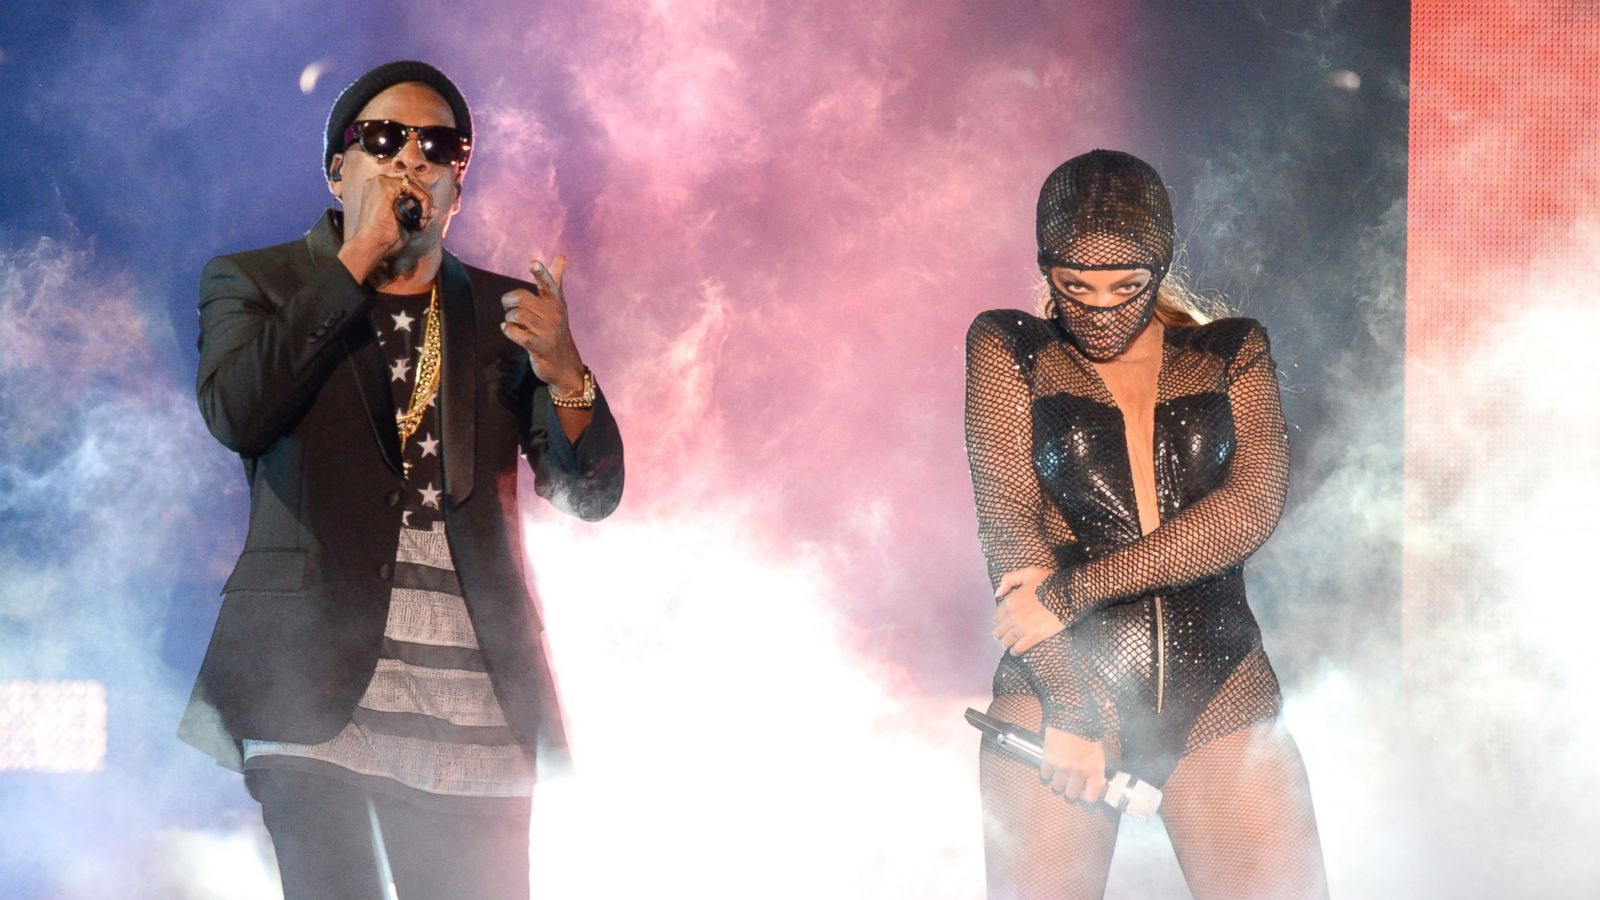 Jay-Z and Beyonce Share Home Videos at Concert - ABC News